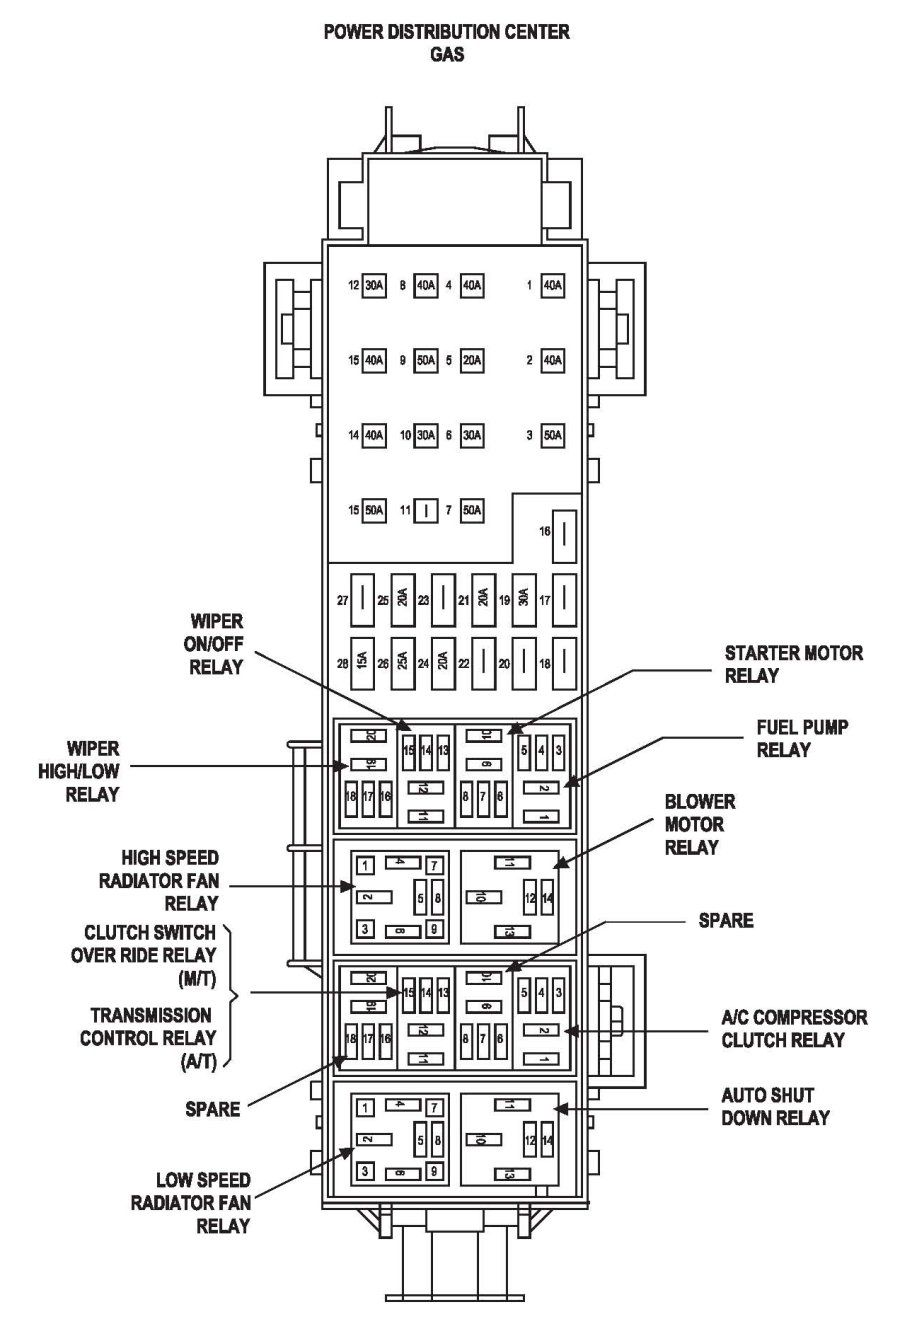 jeep liberty fuse box diagram image details jeep liberty rh pinterest com jeep compass fuse box diagram jeep cherokee fuse box diagram